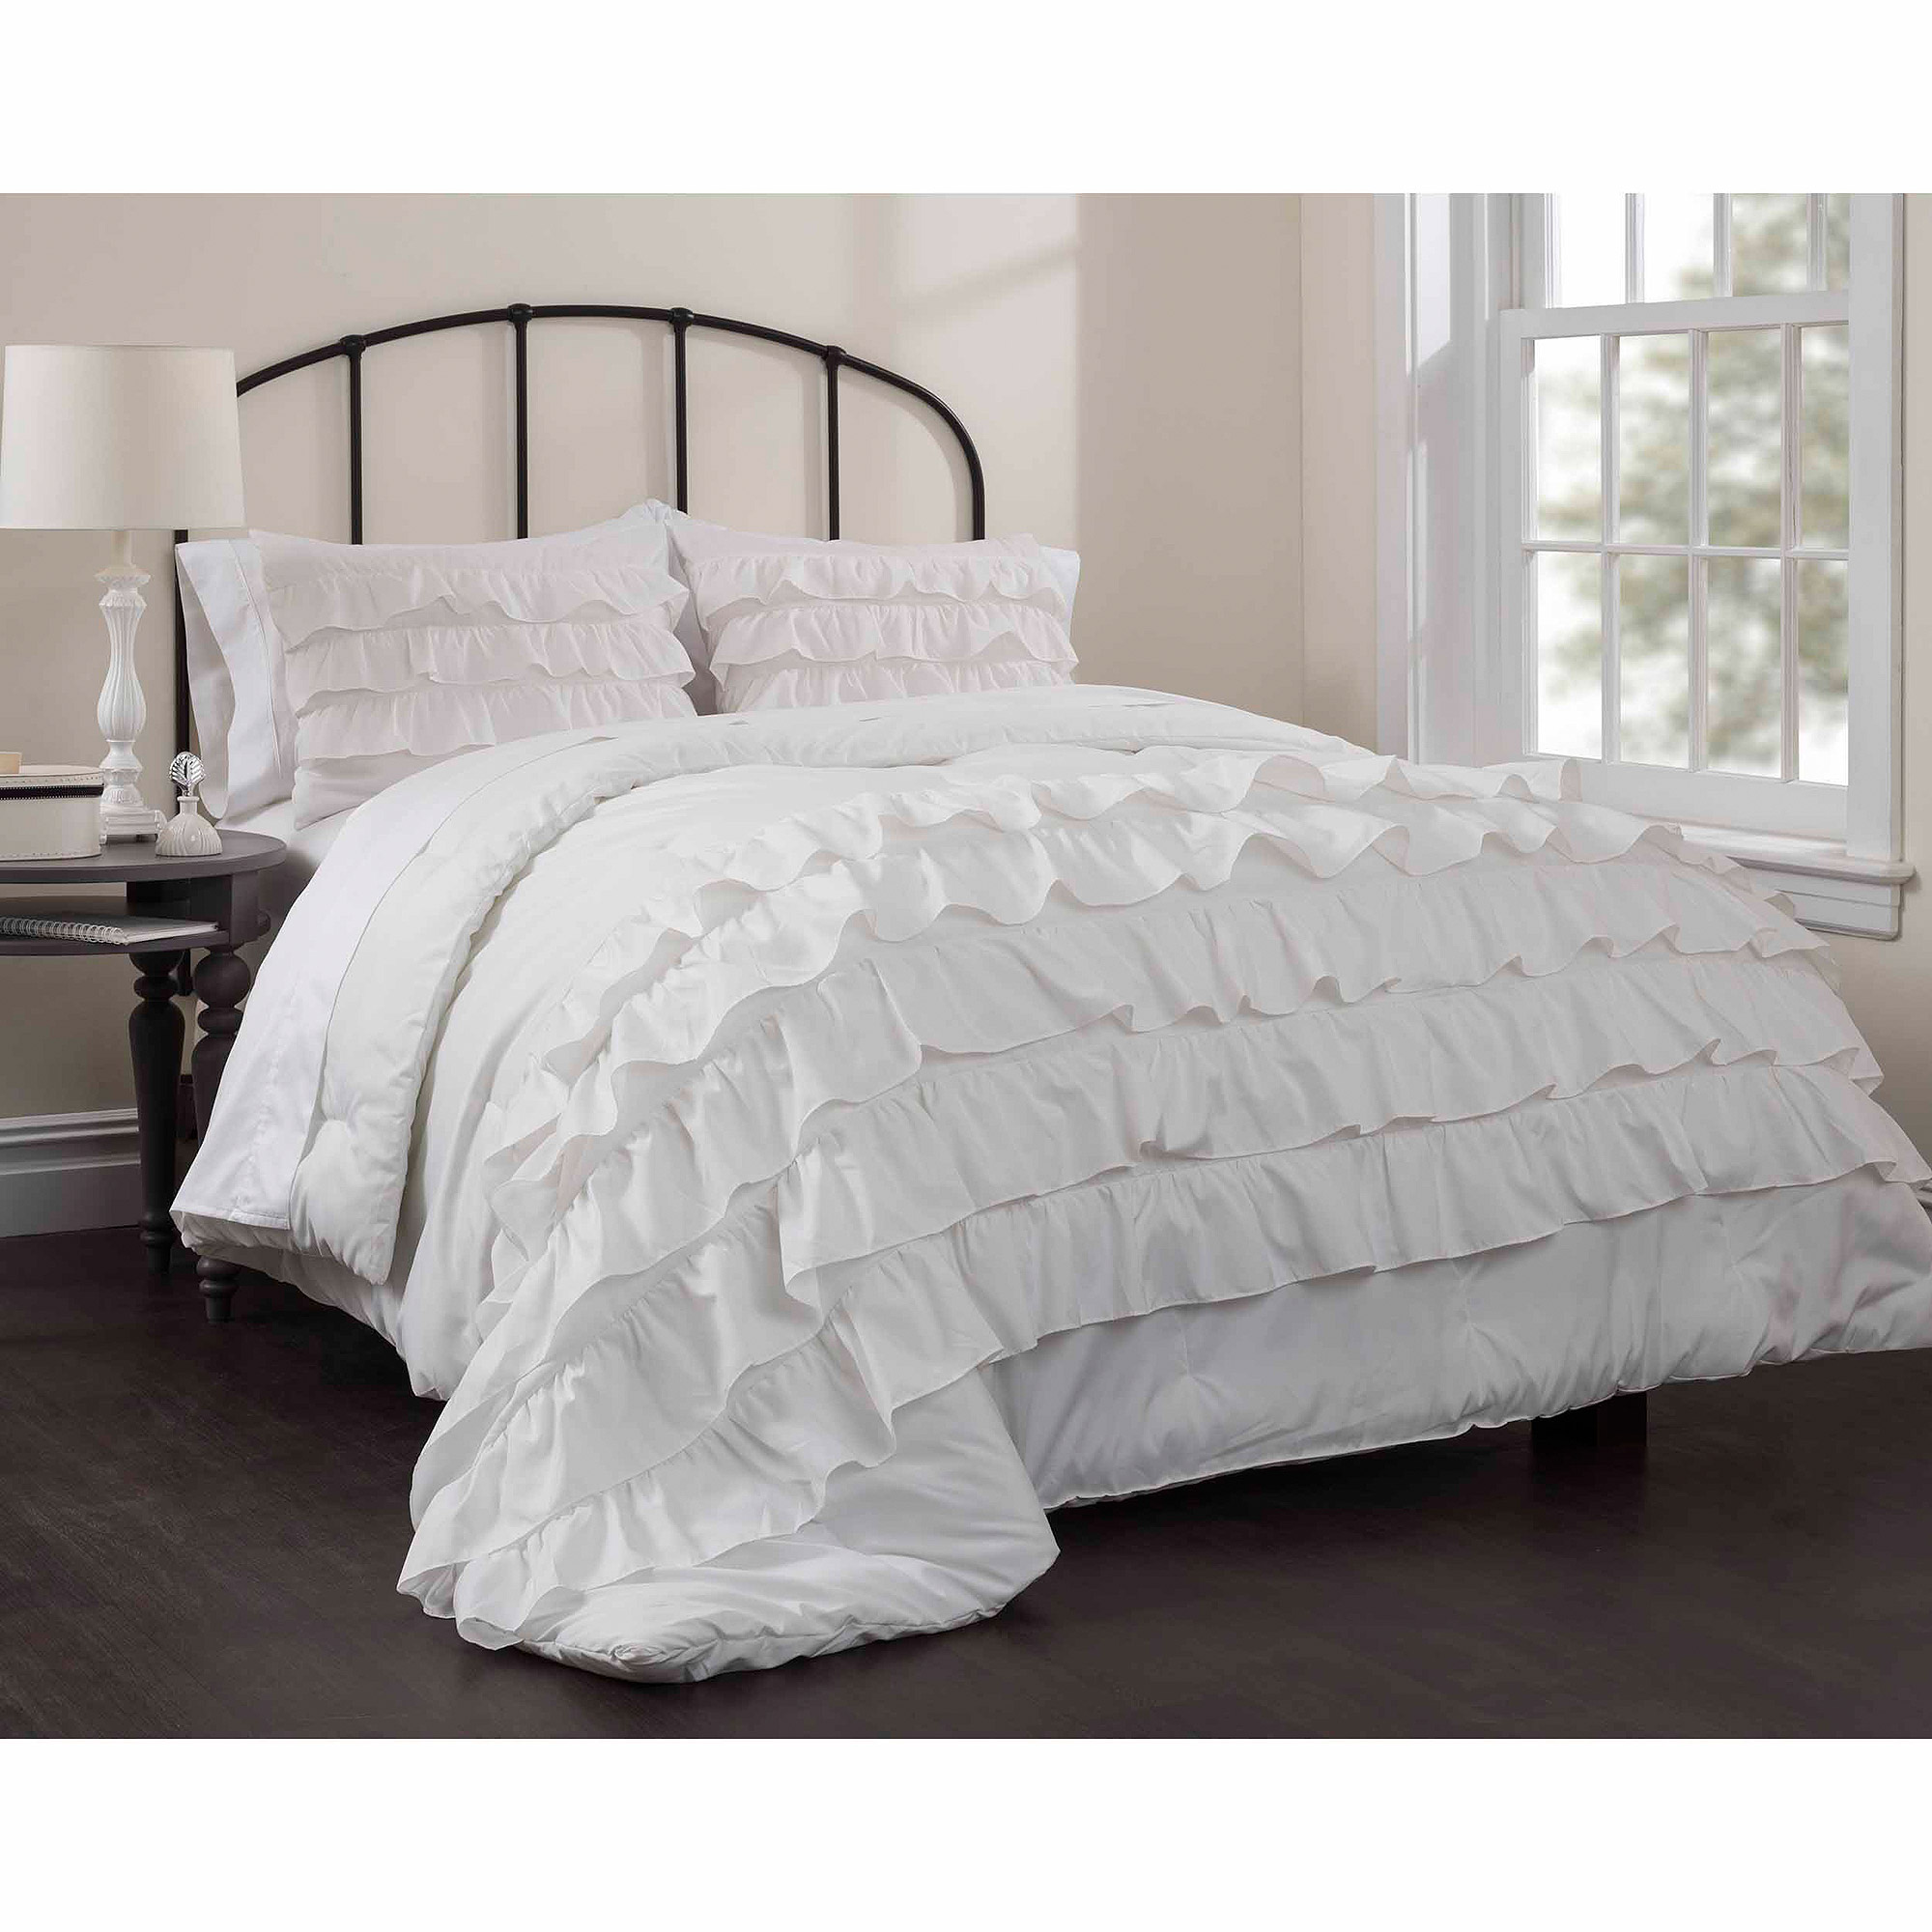 comforter p by bedding set eyelet lucy white wright piper sets